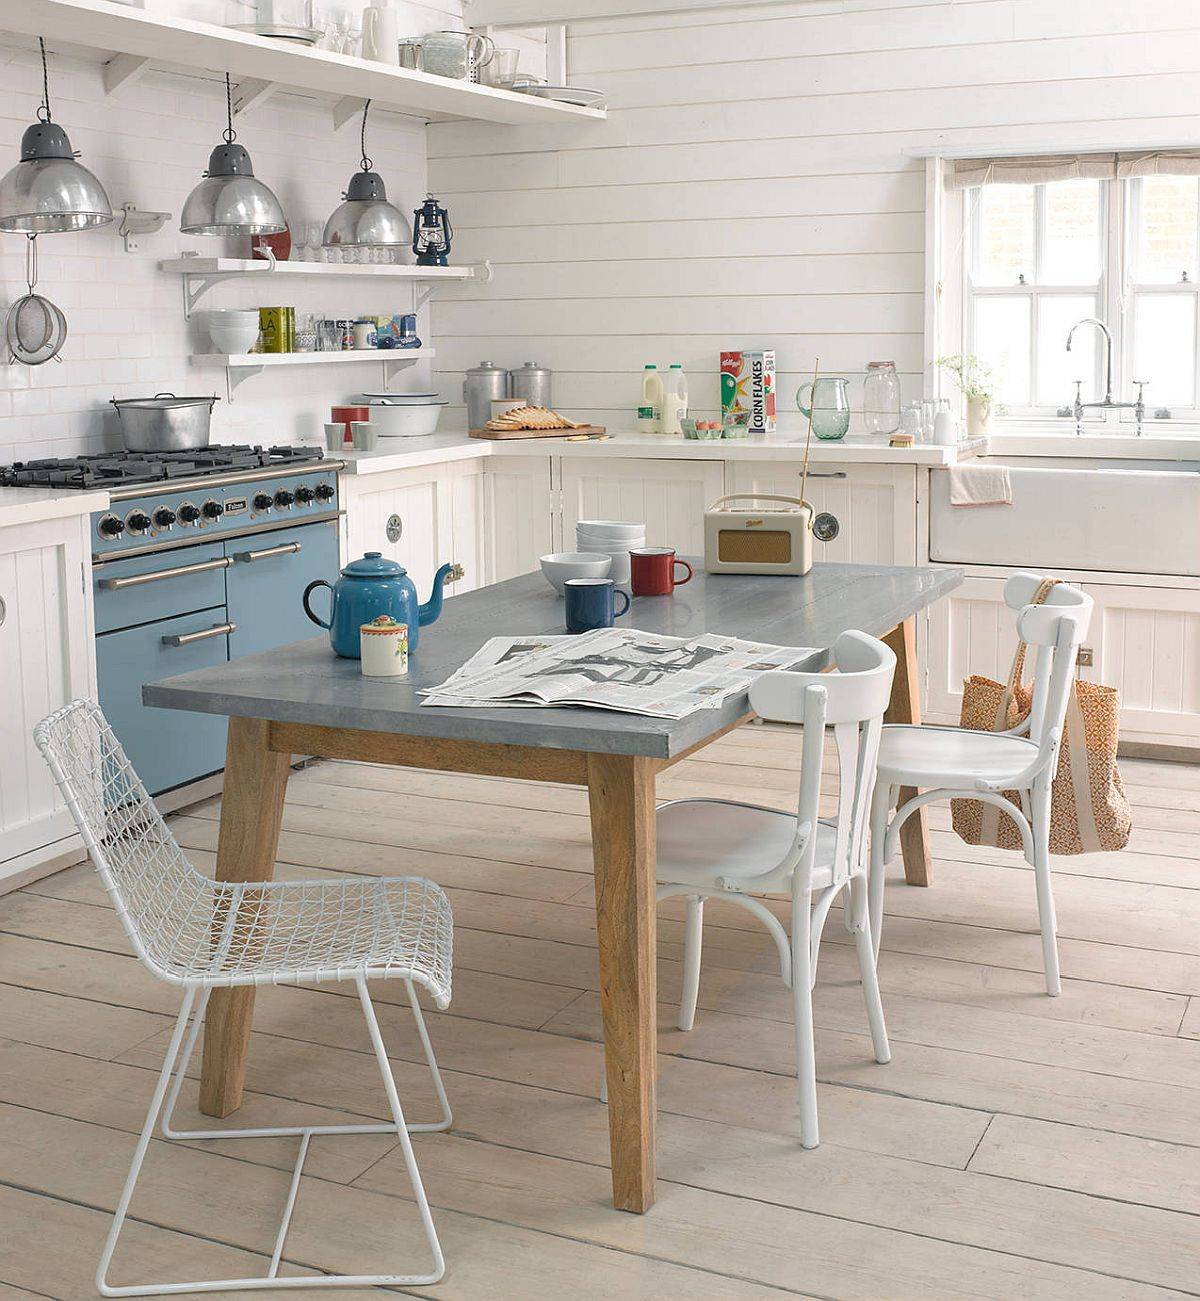 Breezy-and-cheerful-eat-in-kitchen-in-white-and-light-blue-with-a-beautiful-Scandinavian-style-84077